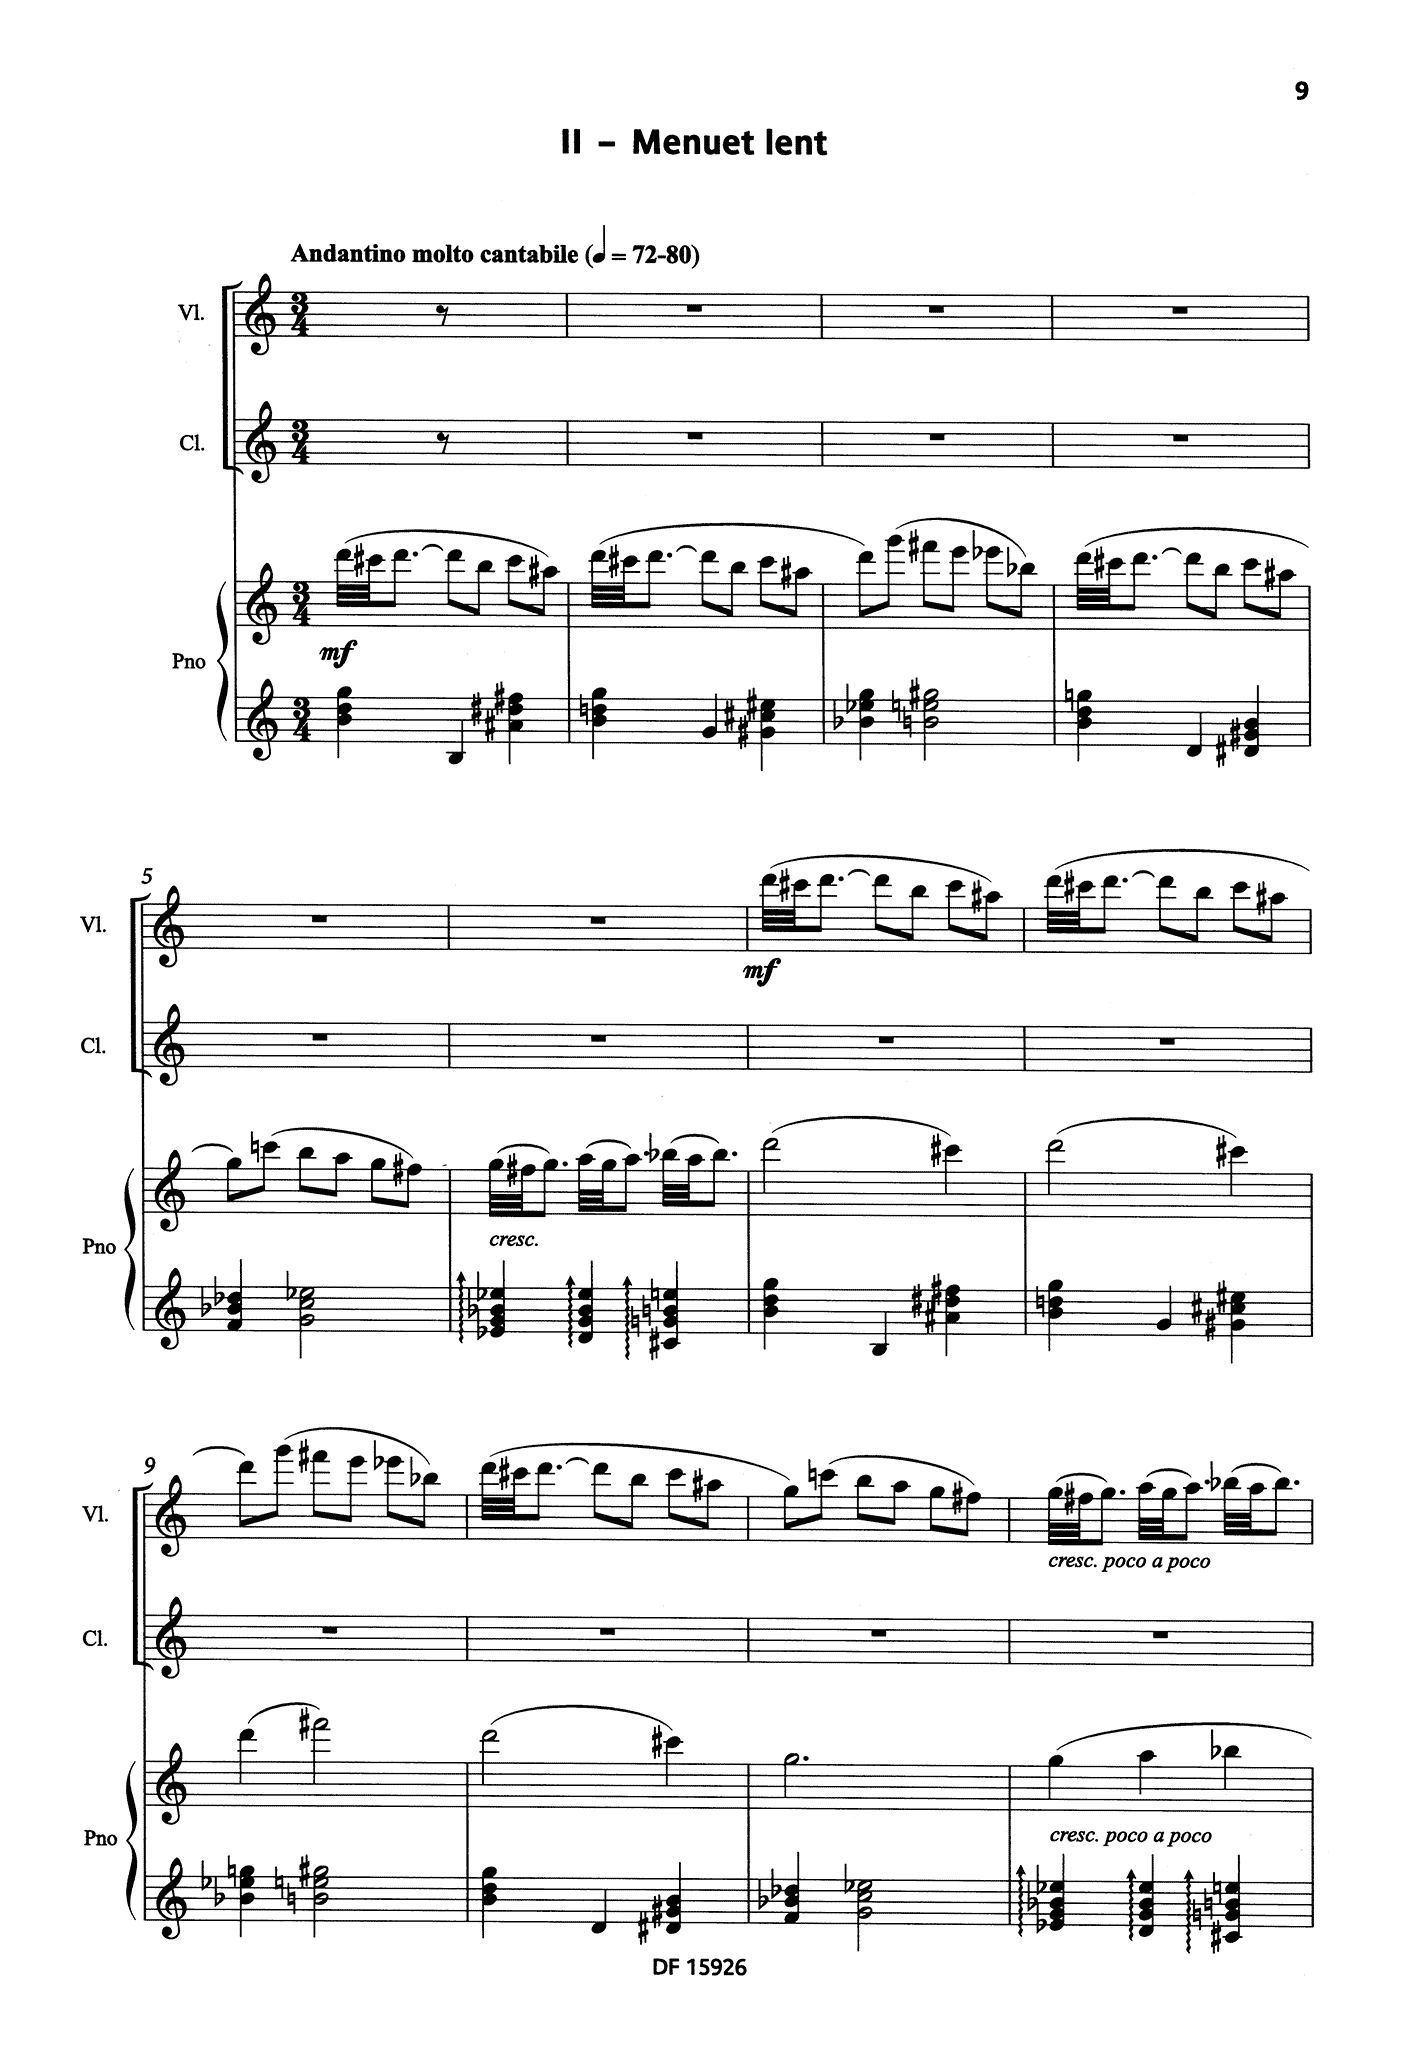 Bacri A Smiling Suite, Op. 100b - Movement 2